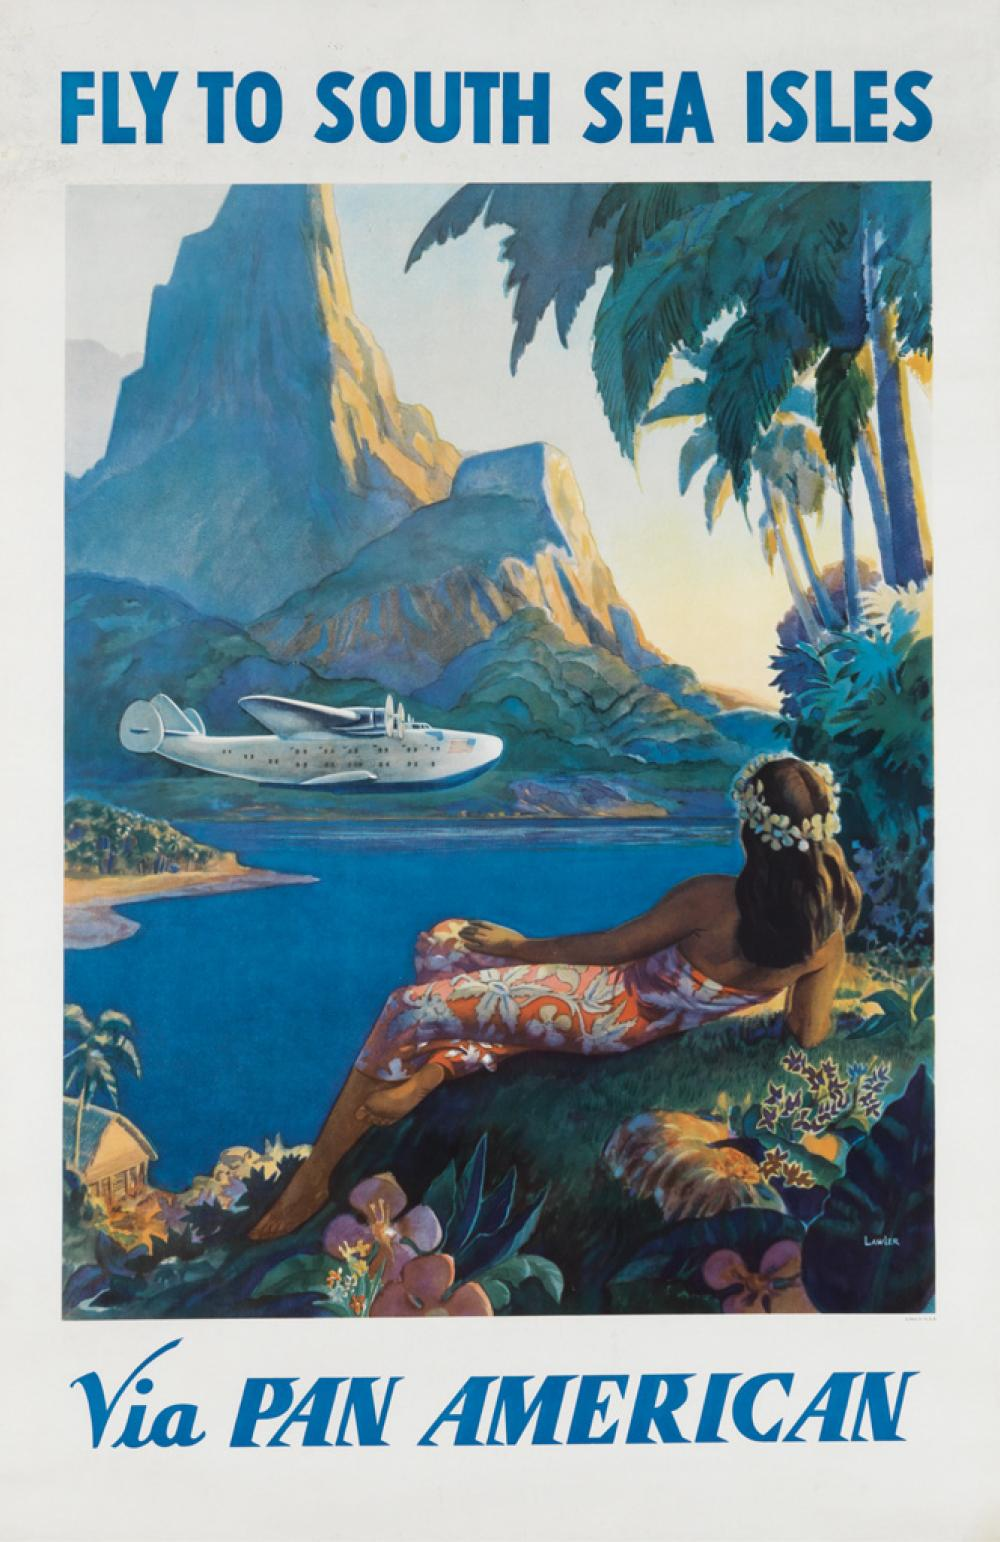 PAUL GEORGE LAWLER (DATES UNKNOWN). FLY TO SOUTH SEA ISLES / VIA PAN AMERICAN. Circa 1938. 40x26 inches, 103x68 cm.